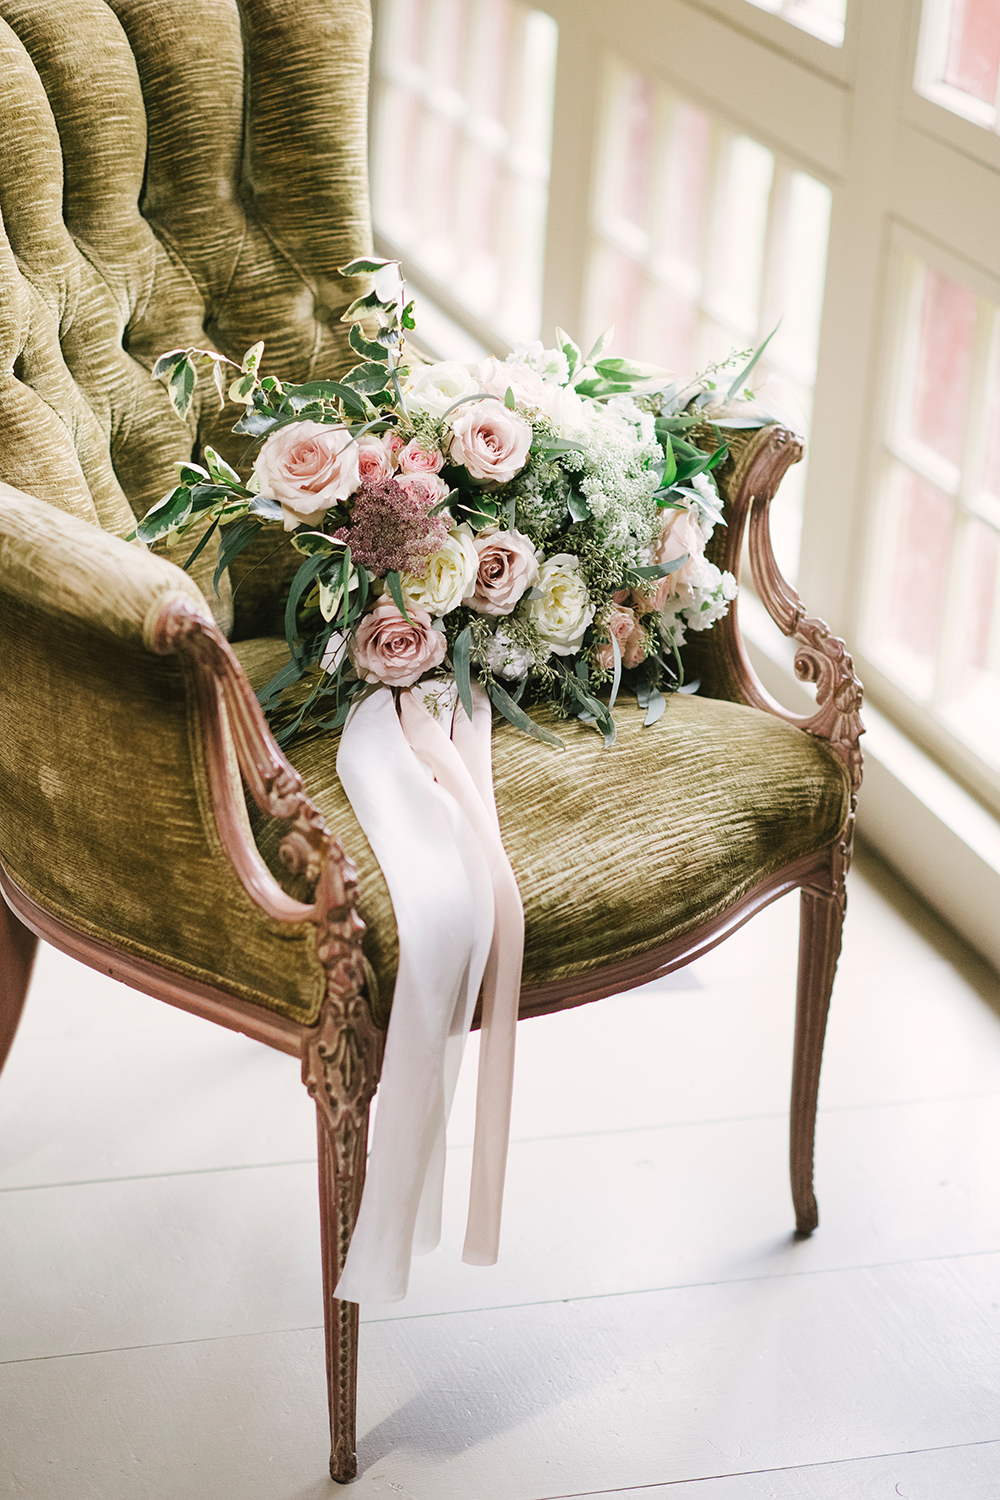 wedding flowers - photo by Alicia King Photography http://ruffledblog.com/upstate-new-york-wedding-ideas-with-copper